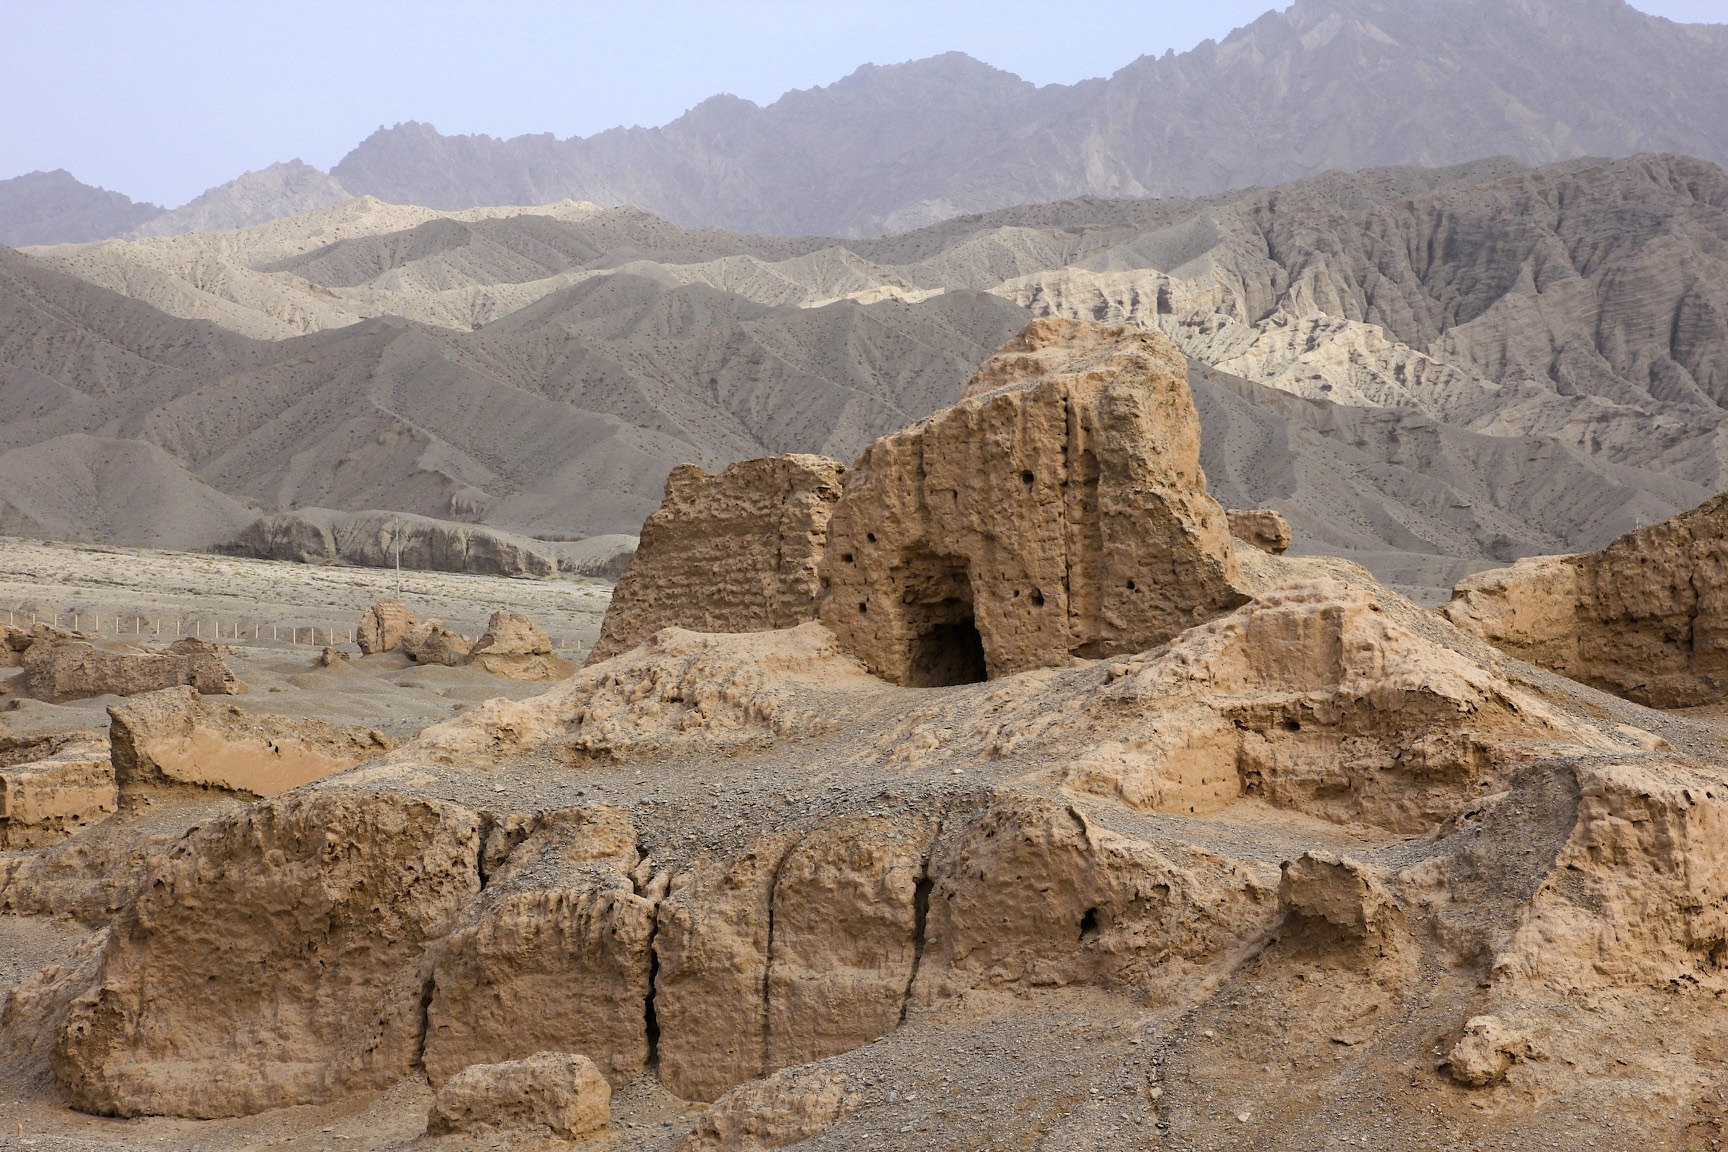 The Subashi Temple is a ruined Buddhist temple near Kucha in the Taklamakan Desert, on the ancient Silk Road, in Xinjiang, China